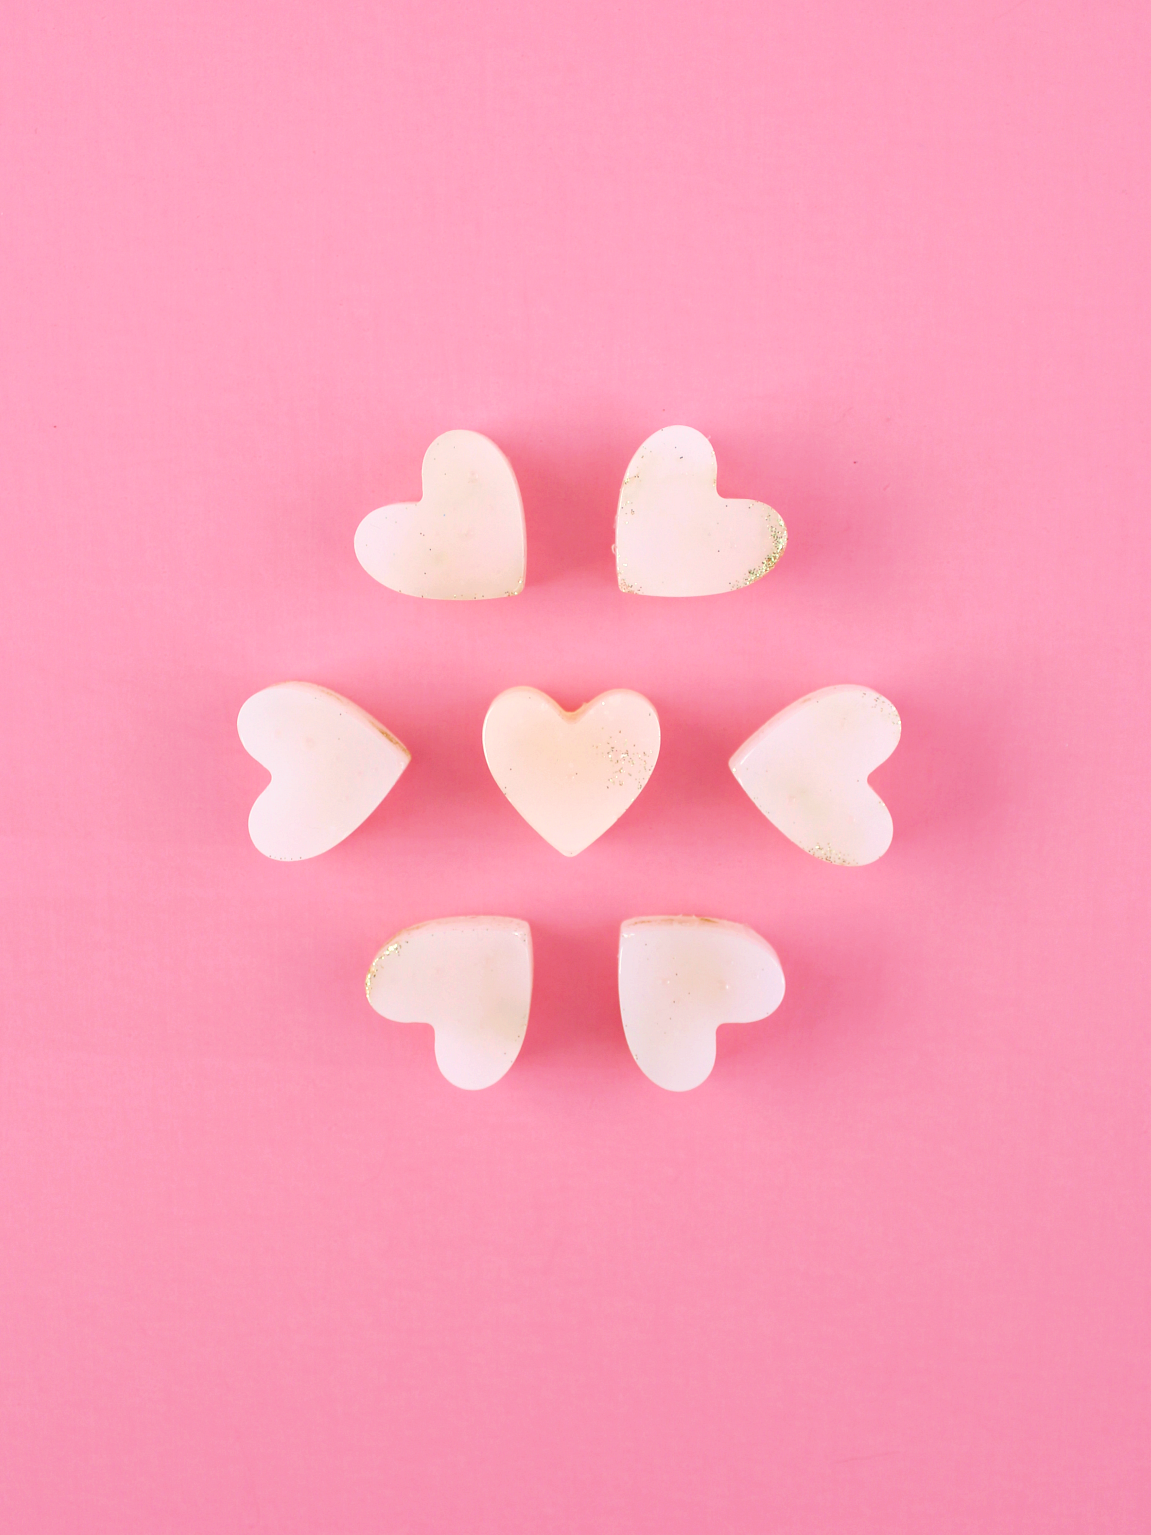 DIY HOT GLUE & GLITTER HEARTS (TO DO WITH WHAT YOU WANT)